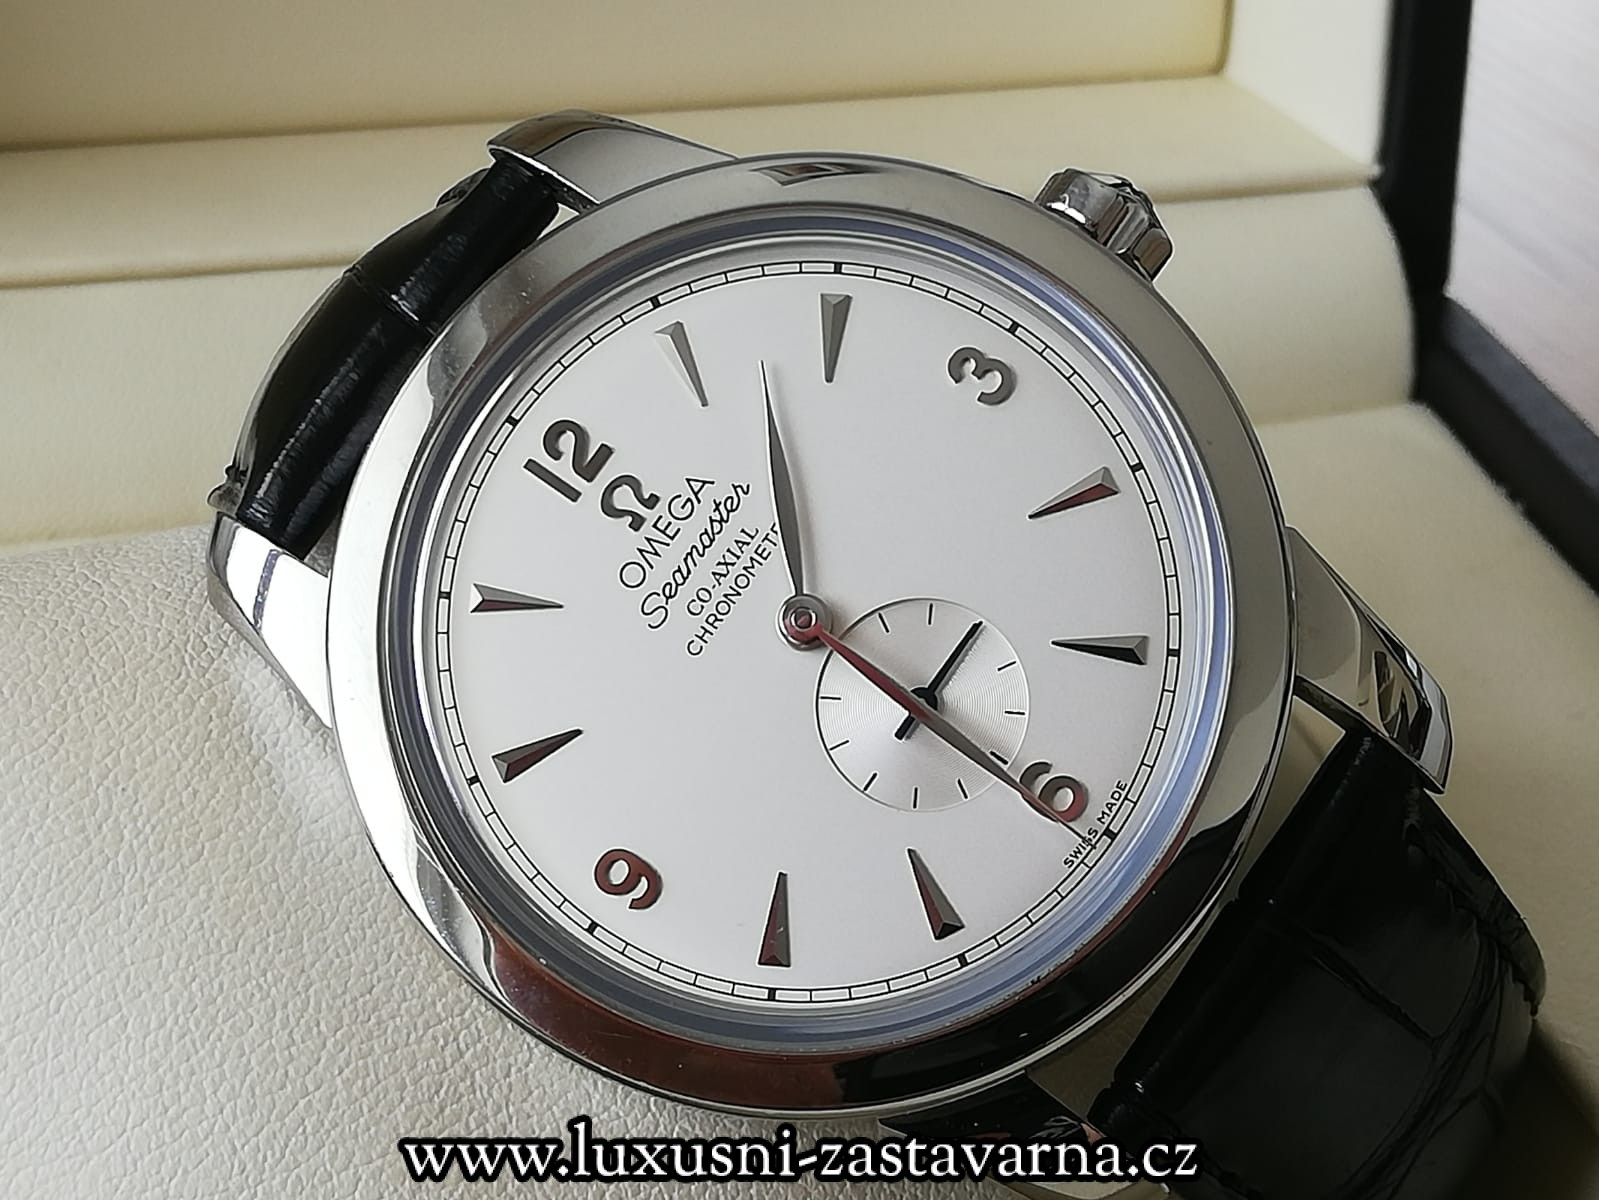 Omega_Seamaster_1948_Co_Axial_Olympic_Collection_London_2012_Limited_39mm_09